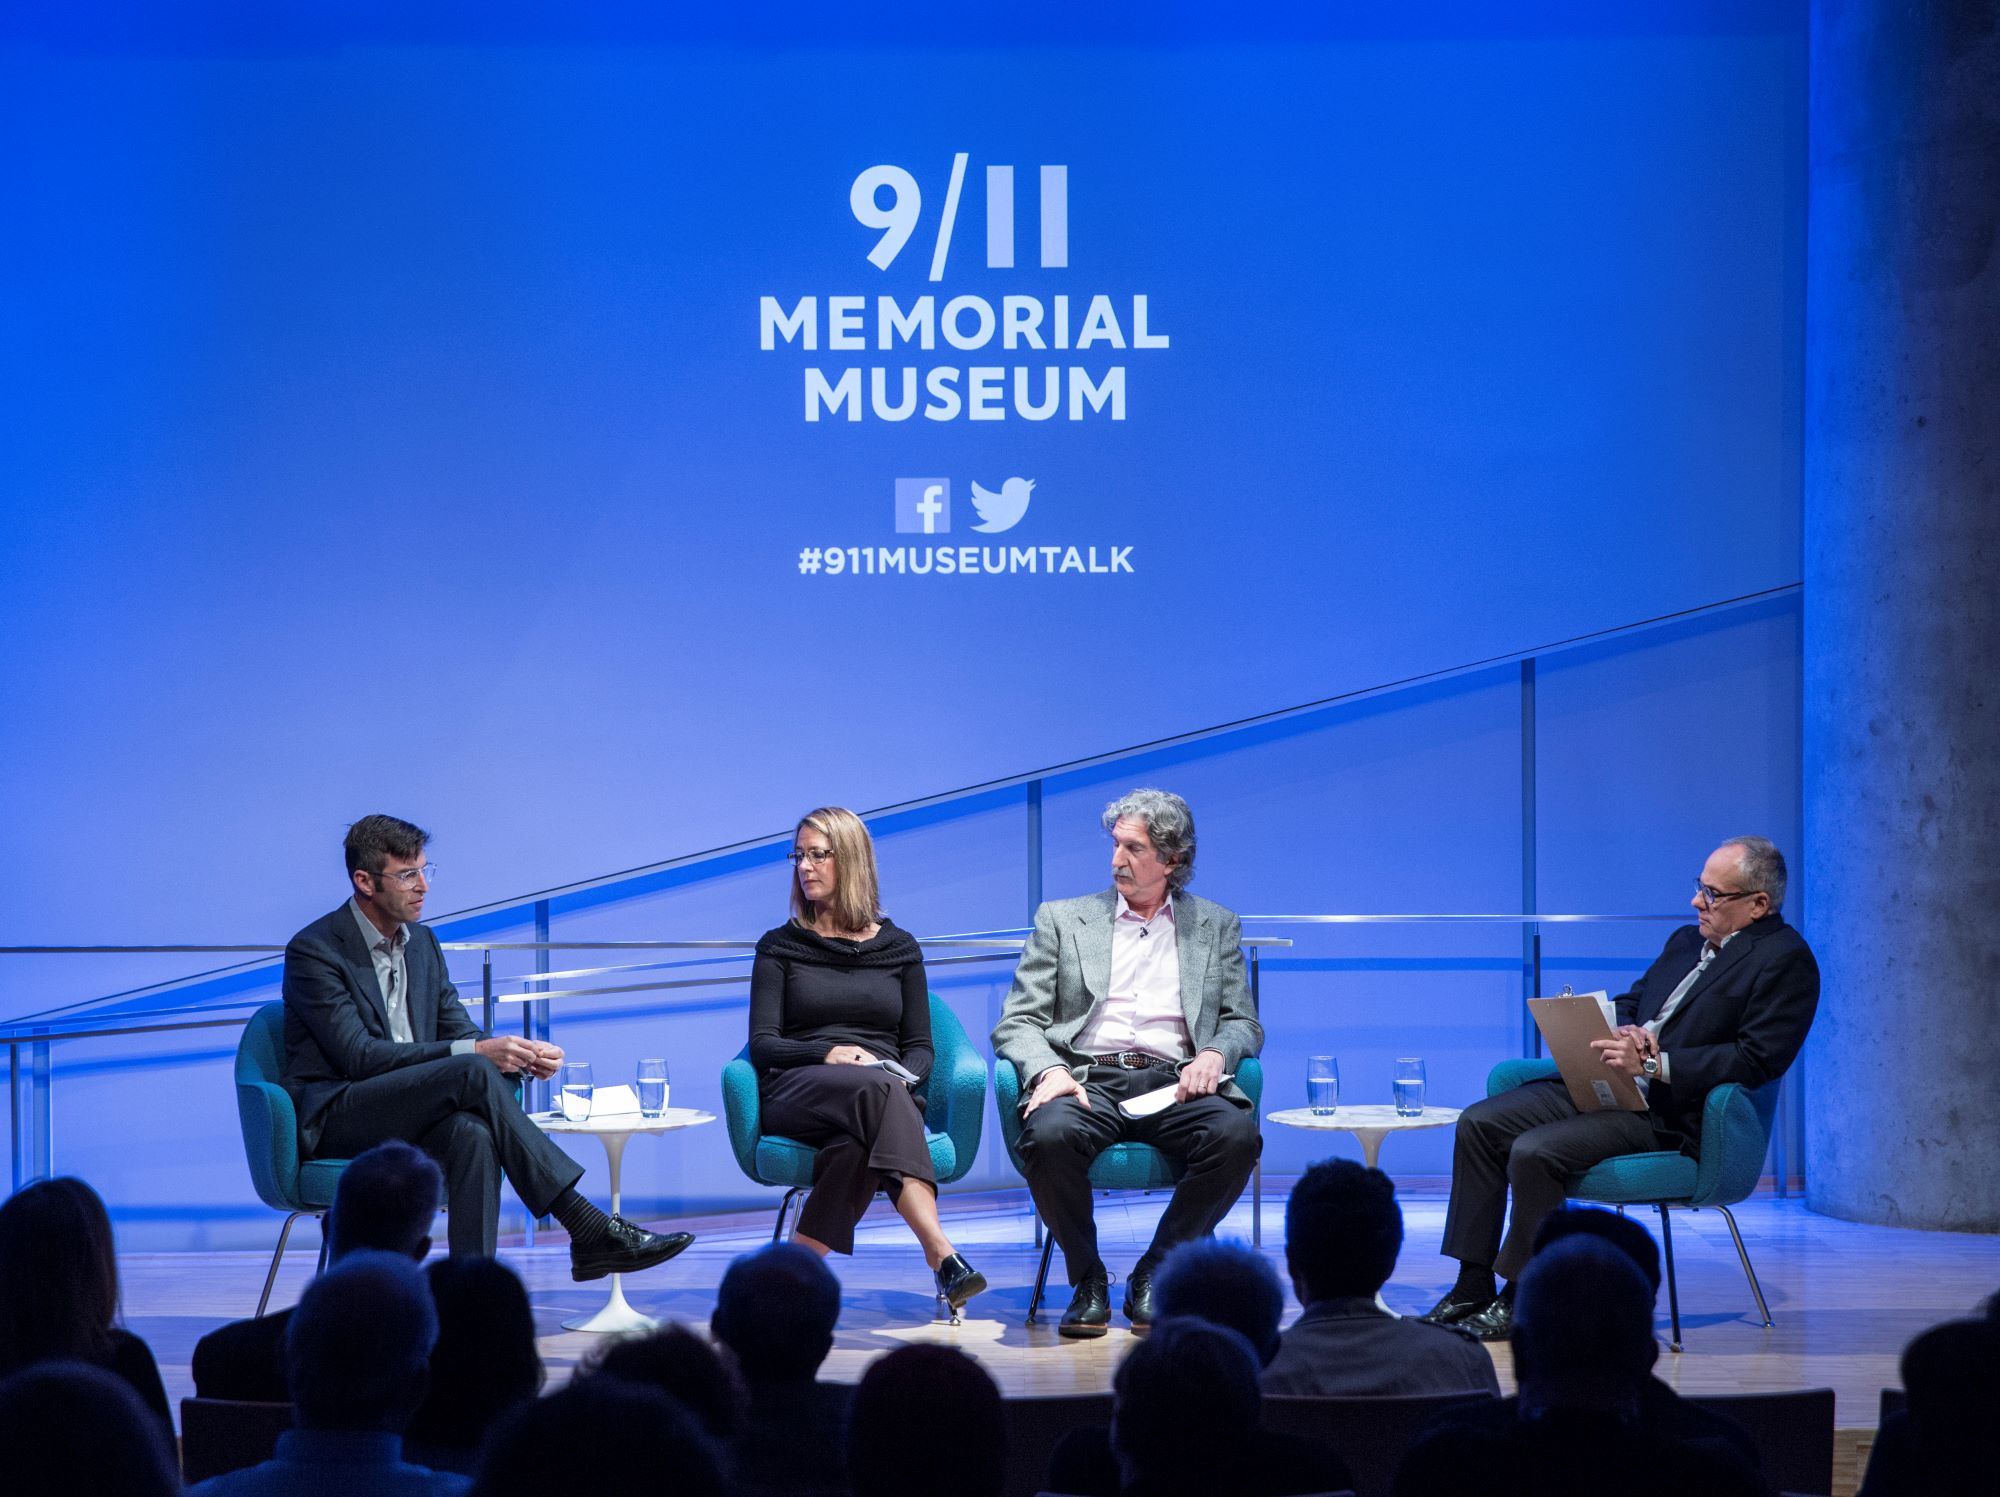 Handel Architects LLP partner Michael Arad, Paul Murdoch Architects President Paul Murdoch, and KBAS partner Julie Beckman are onstage as they take part in the public program, The Architecture of Remembrance. Clifford Chanin, the executive vice president and deputy director for museum programs, is seated to their left holding clipboard. The 9/11 Memorial & Museum logo is projected above the four of them. The silhouettes of audience members are in the foreground.